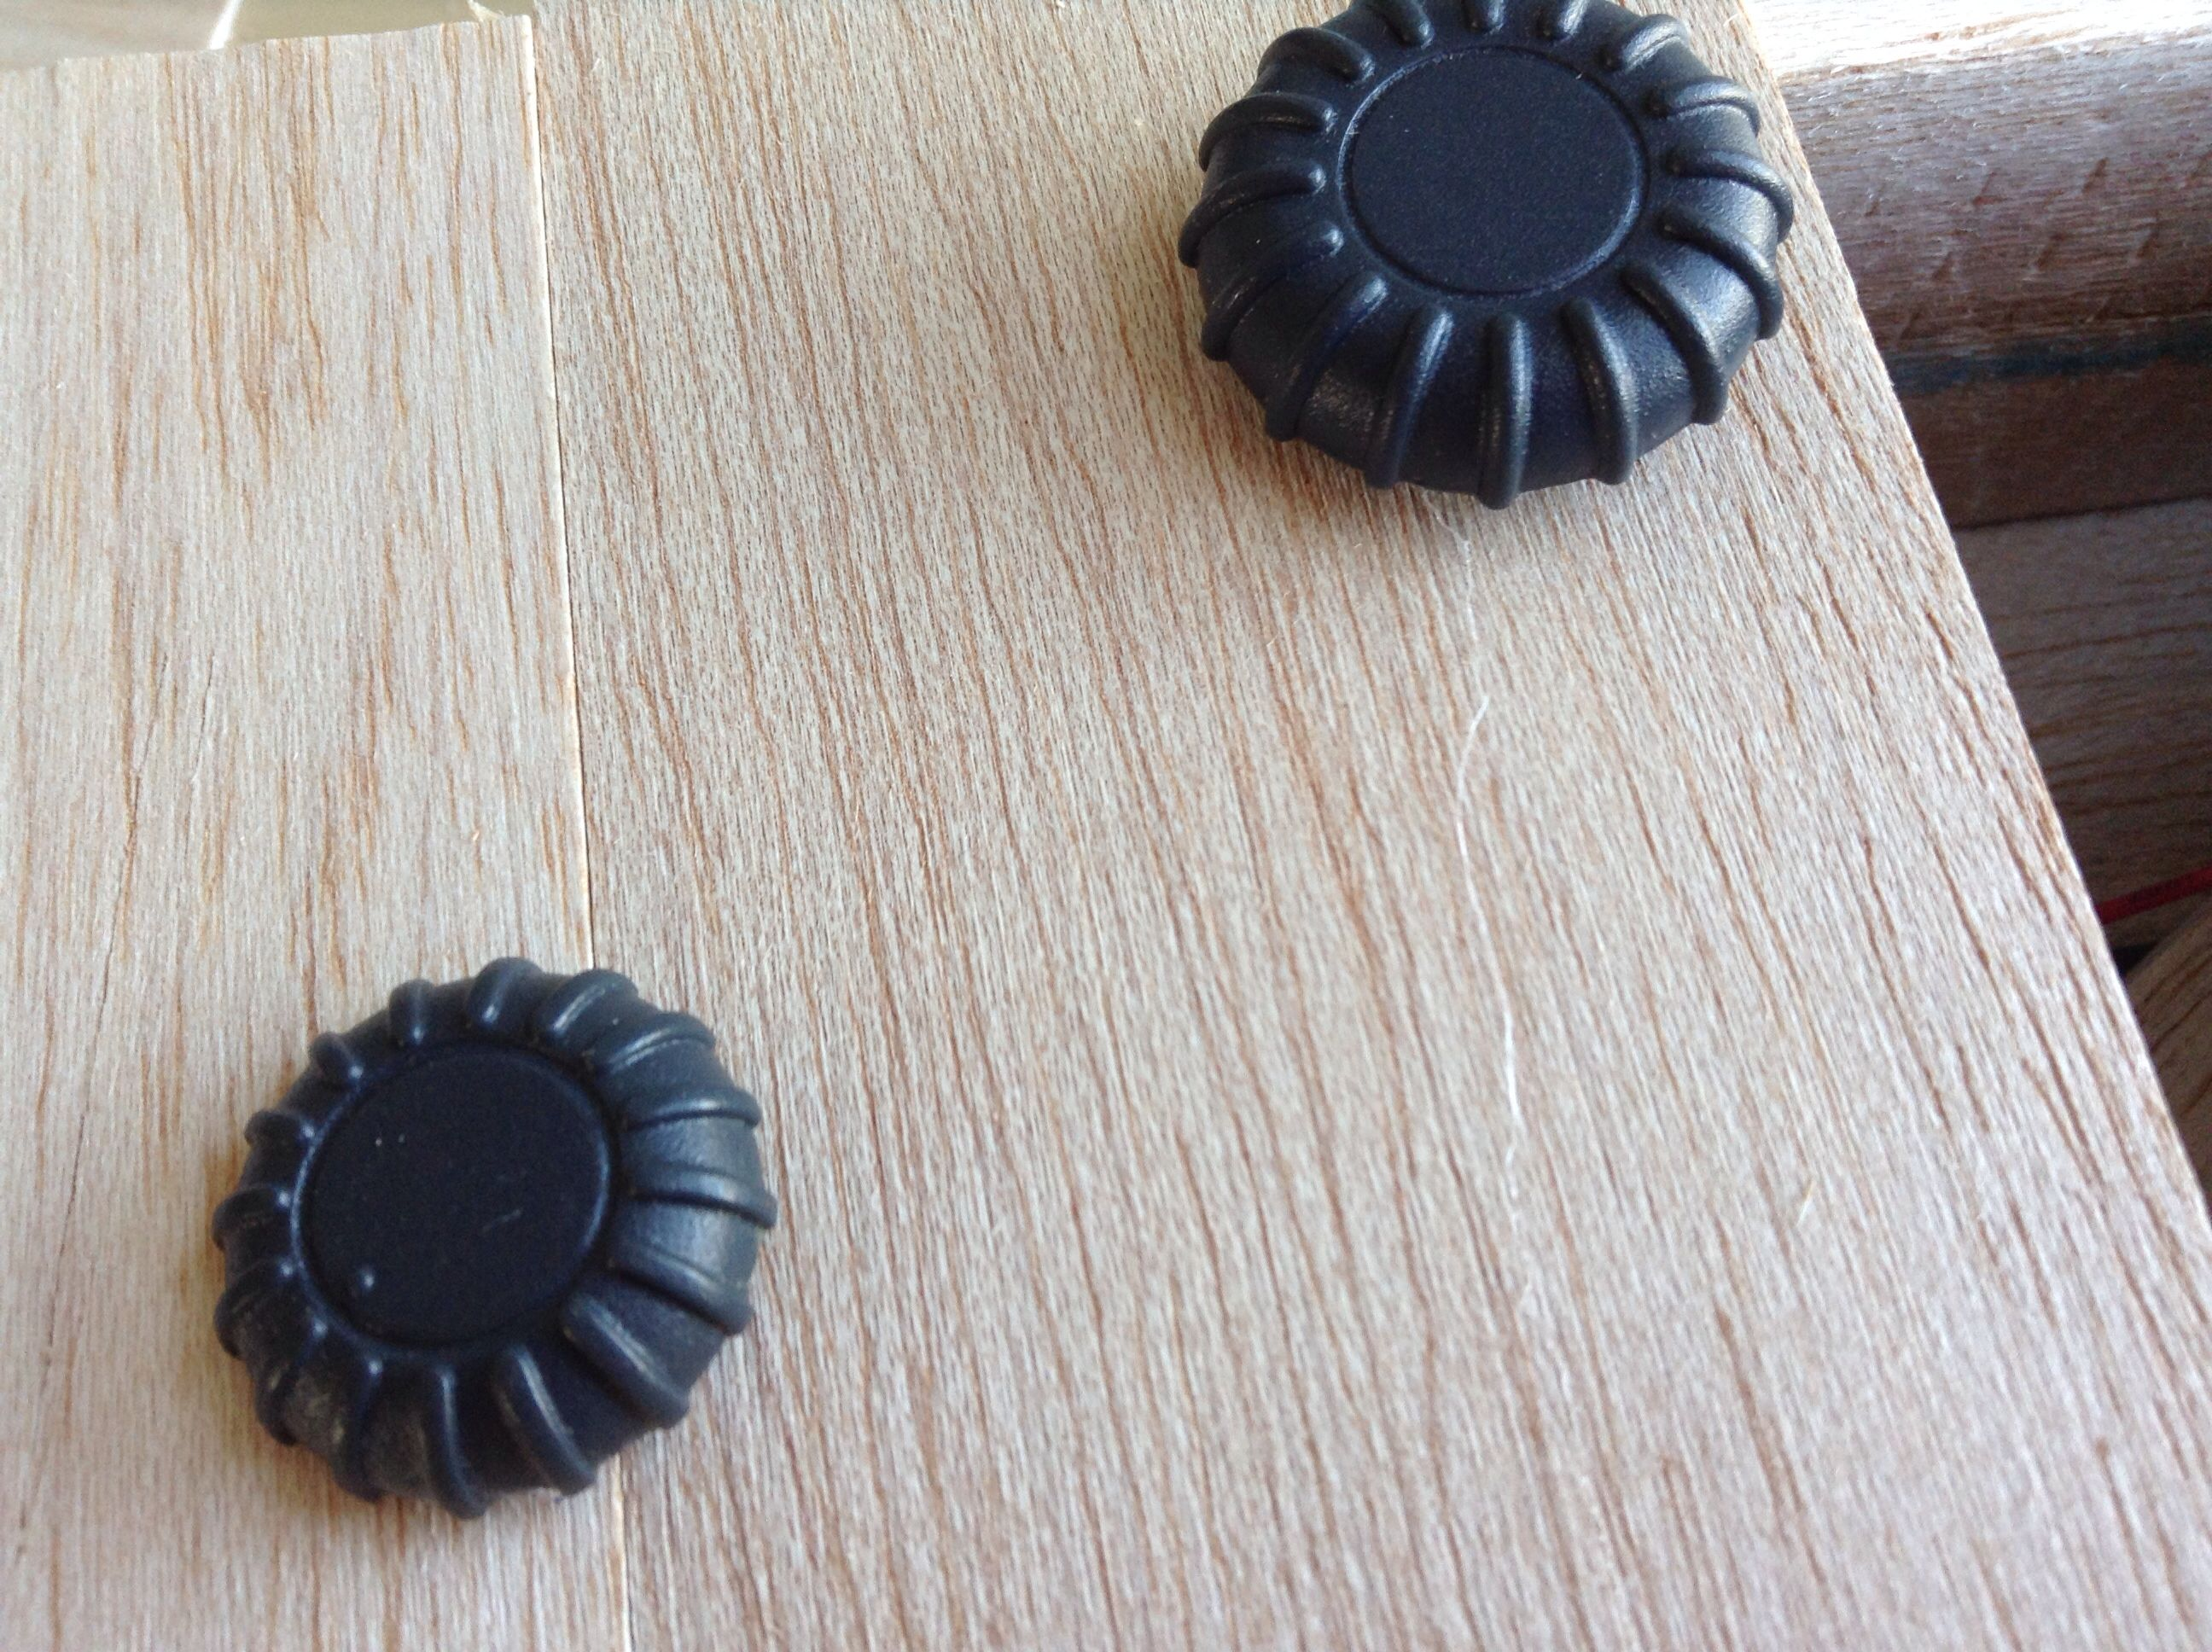 Picture of Trim Straws and Glue on Dials.